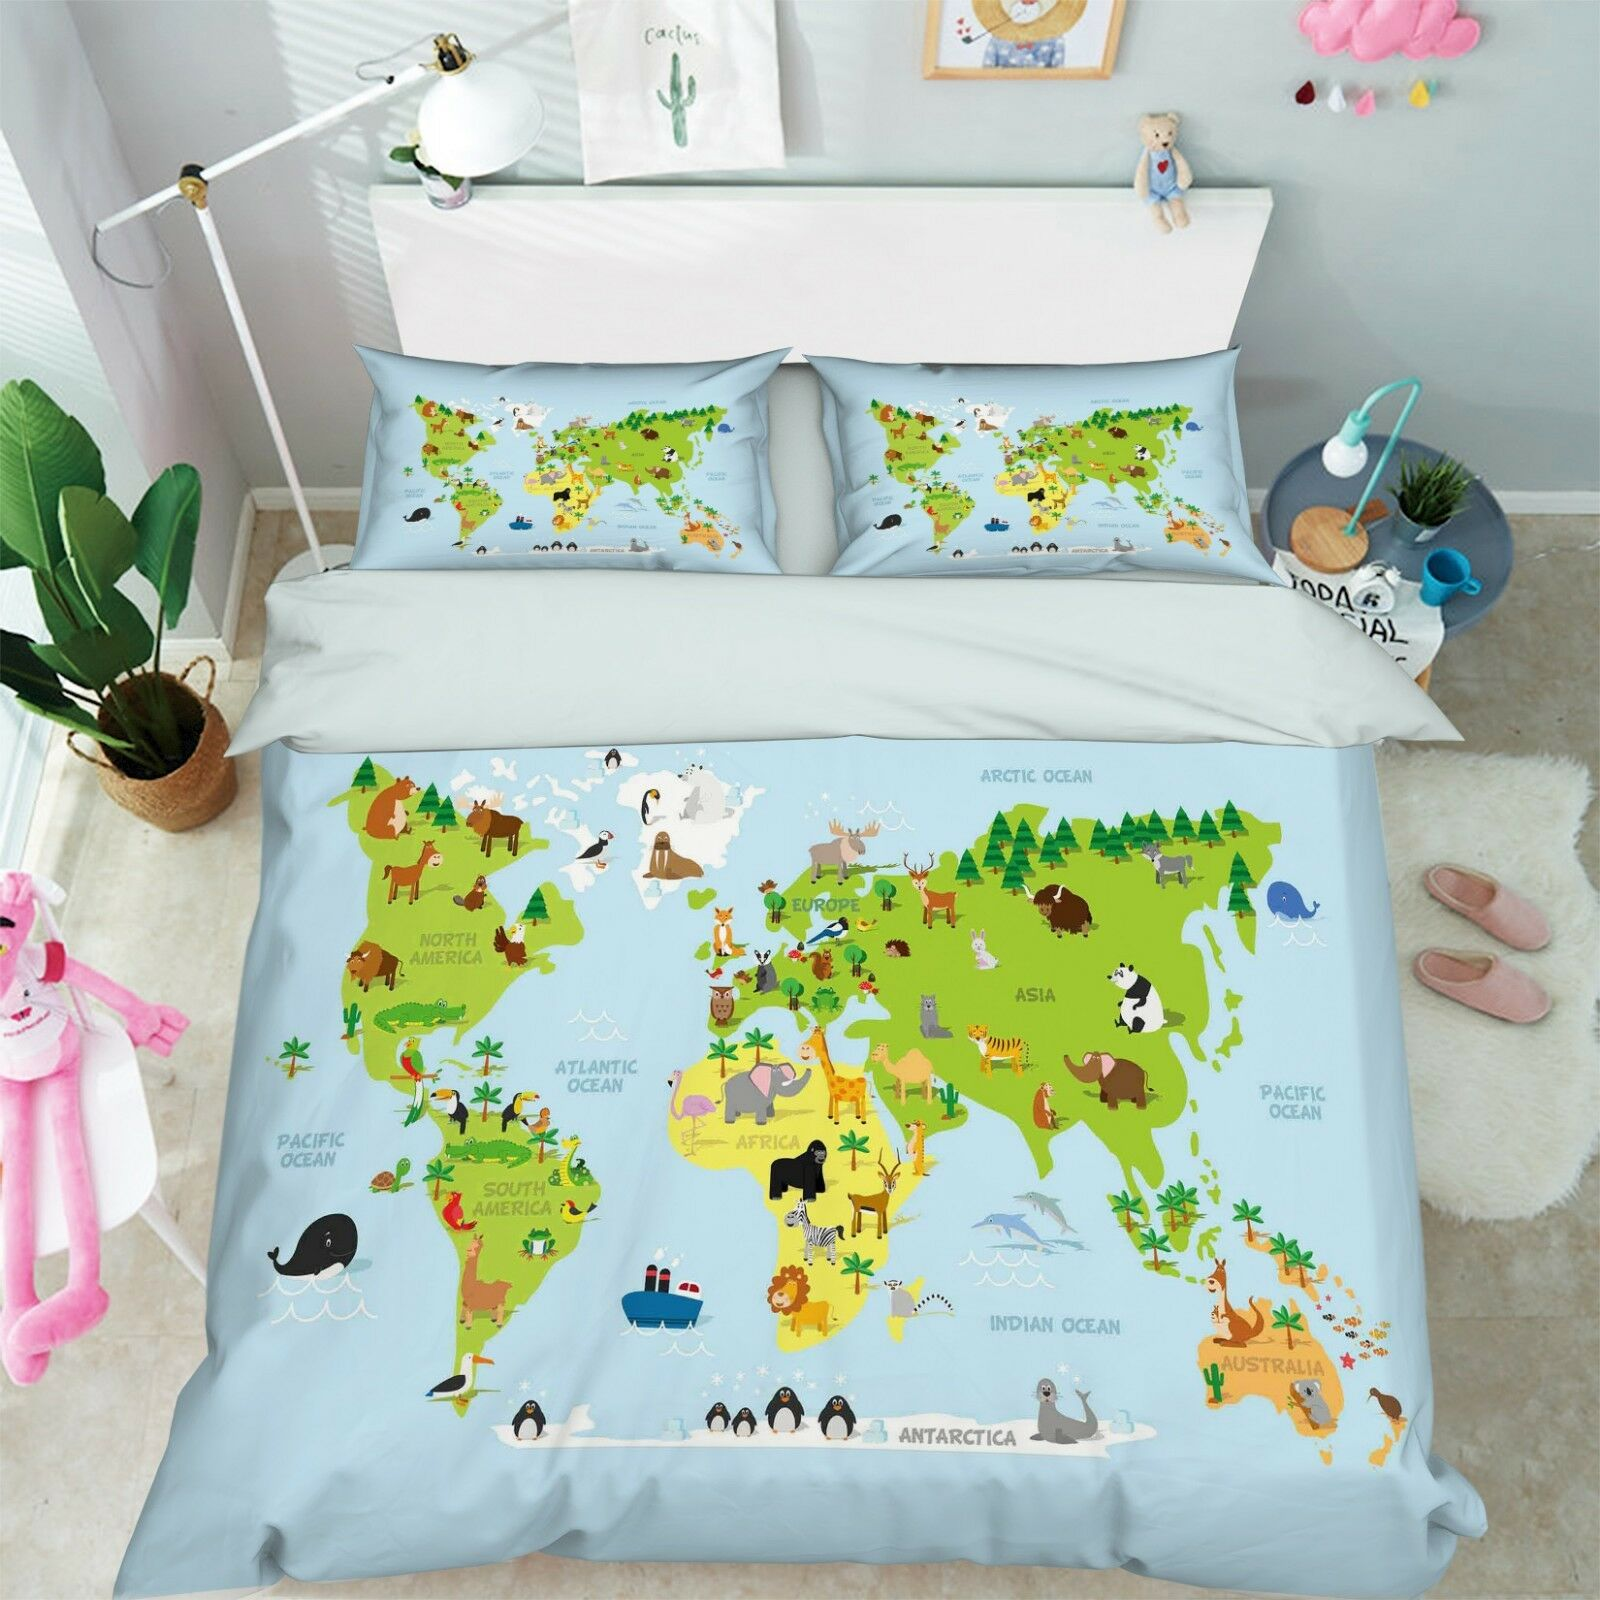 3D Animal Map Sea 66 Bed Pillowcases Quilt Duvet Cover Set Single Queen AU Carly